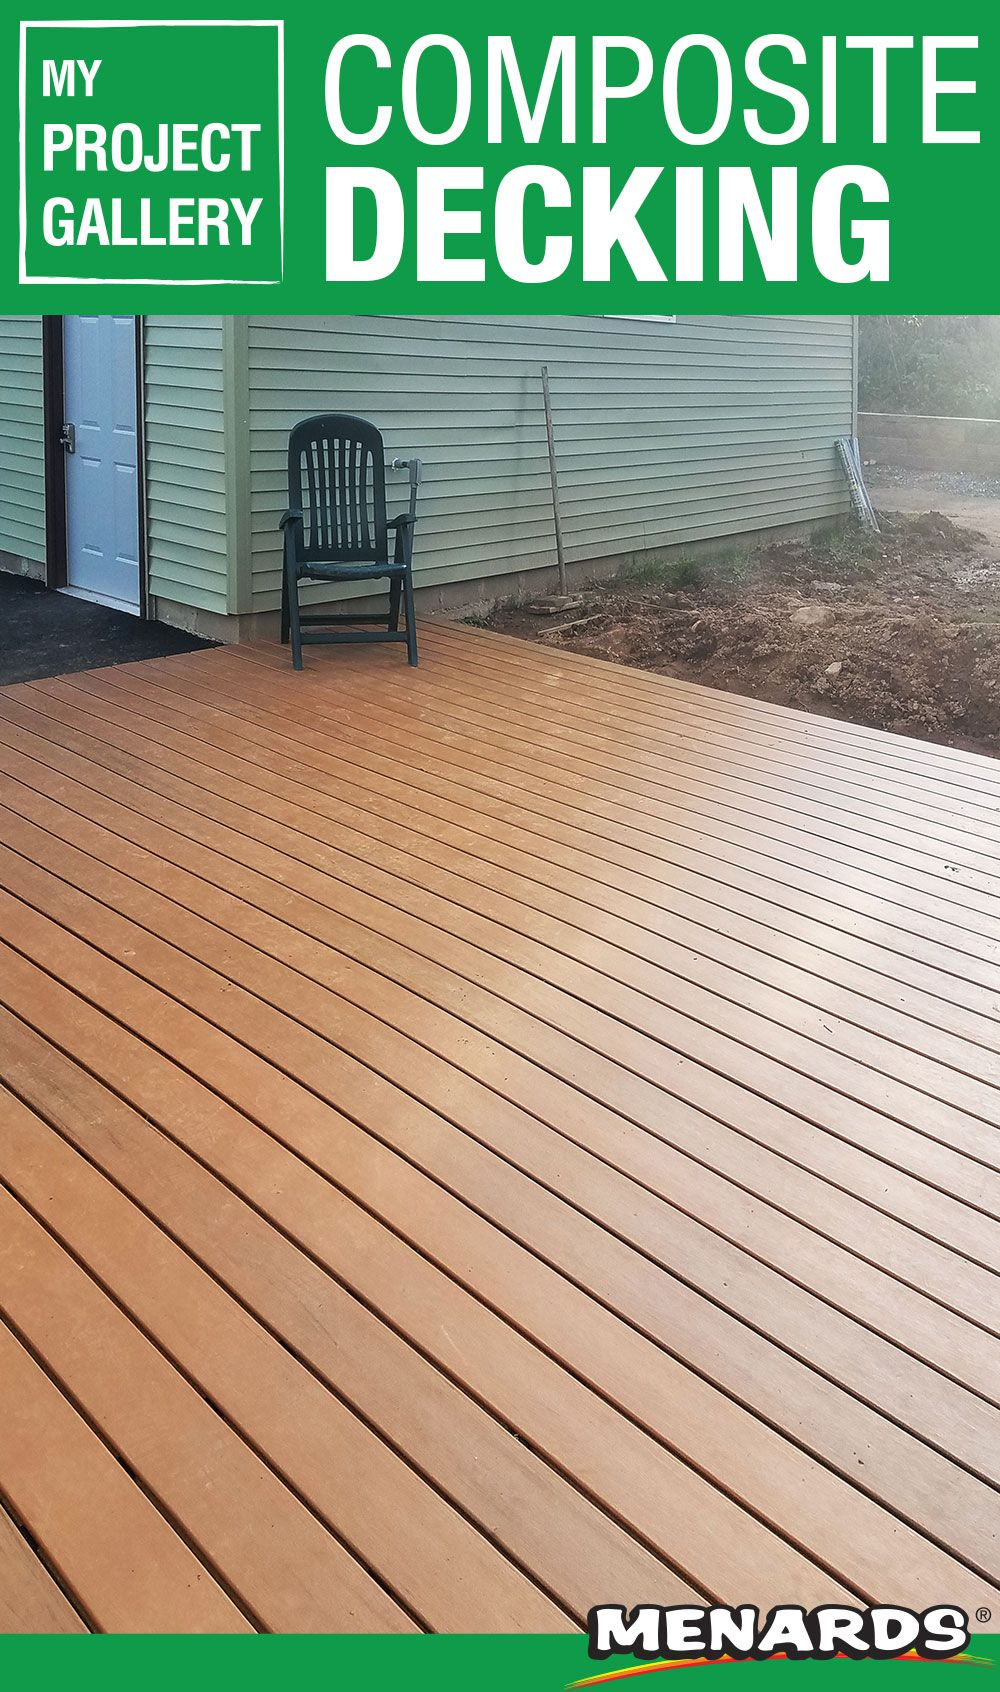 A composite deck is a great choice for a lowmaintenance